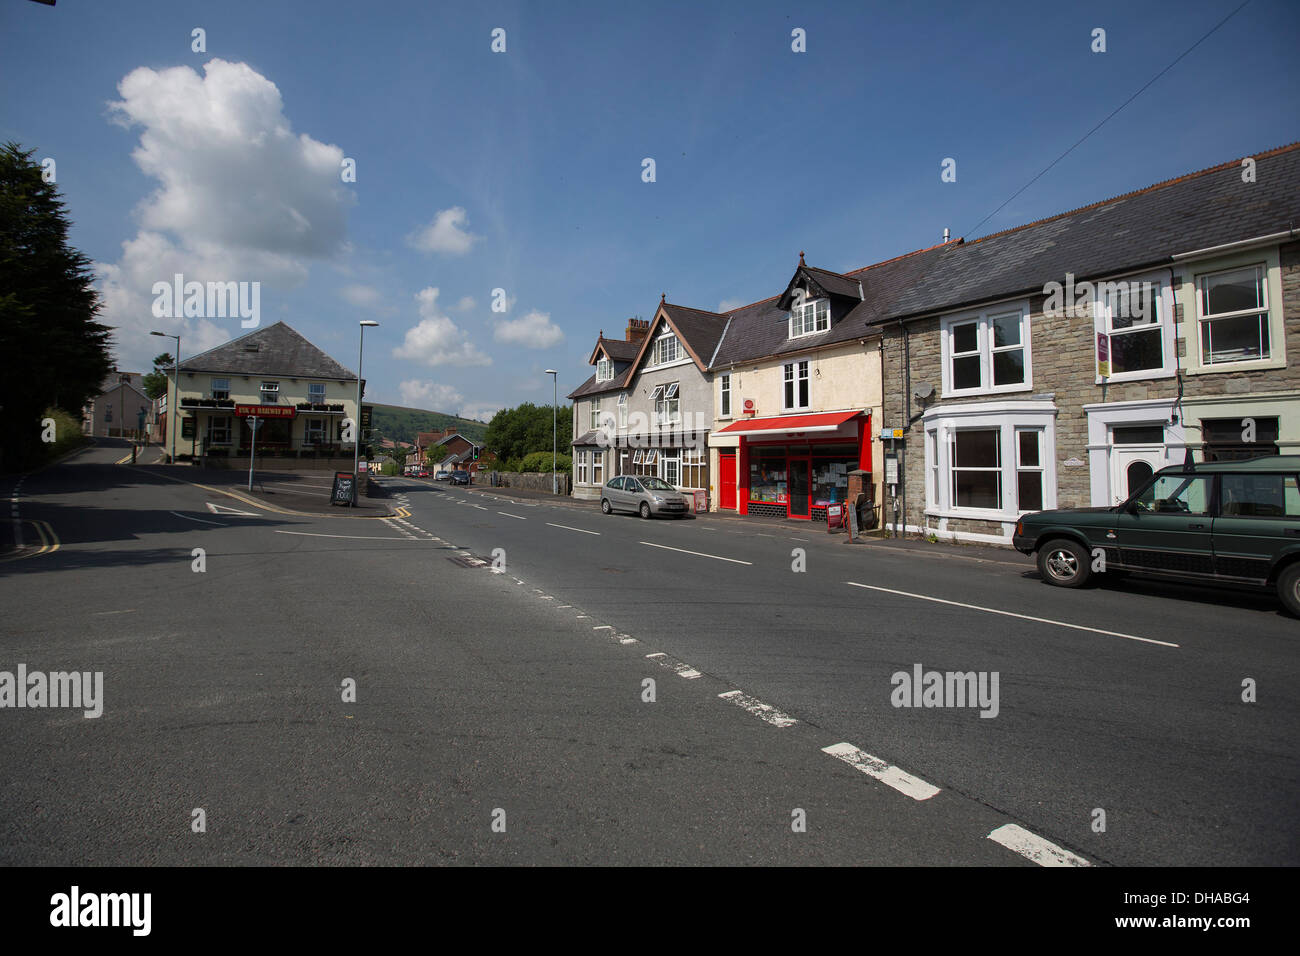 The village of Sennybridge near Brecon. Two servicemen were killed in an incident and a third seriously injured. - Stock Image